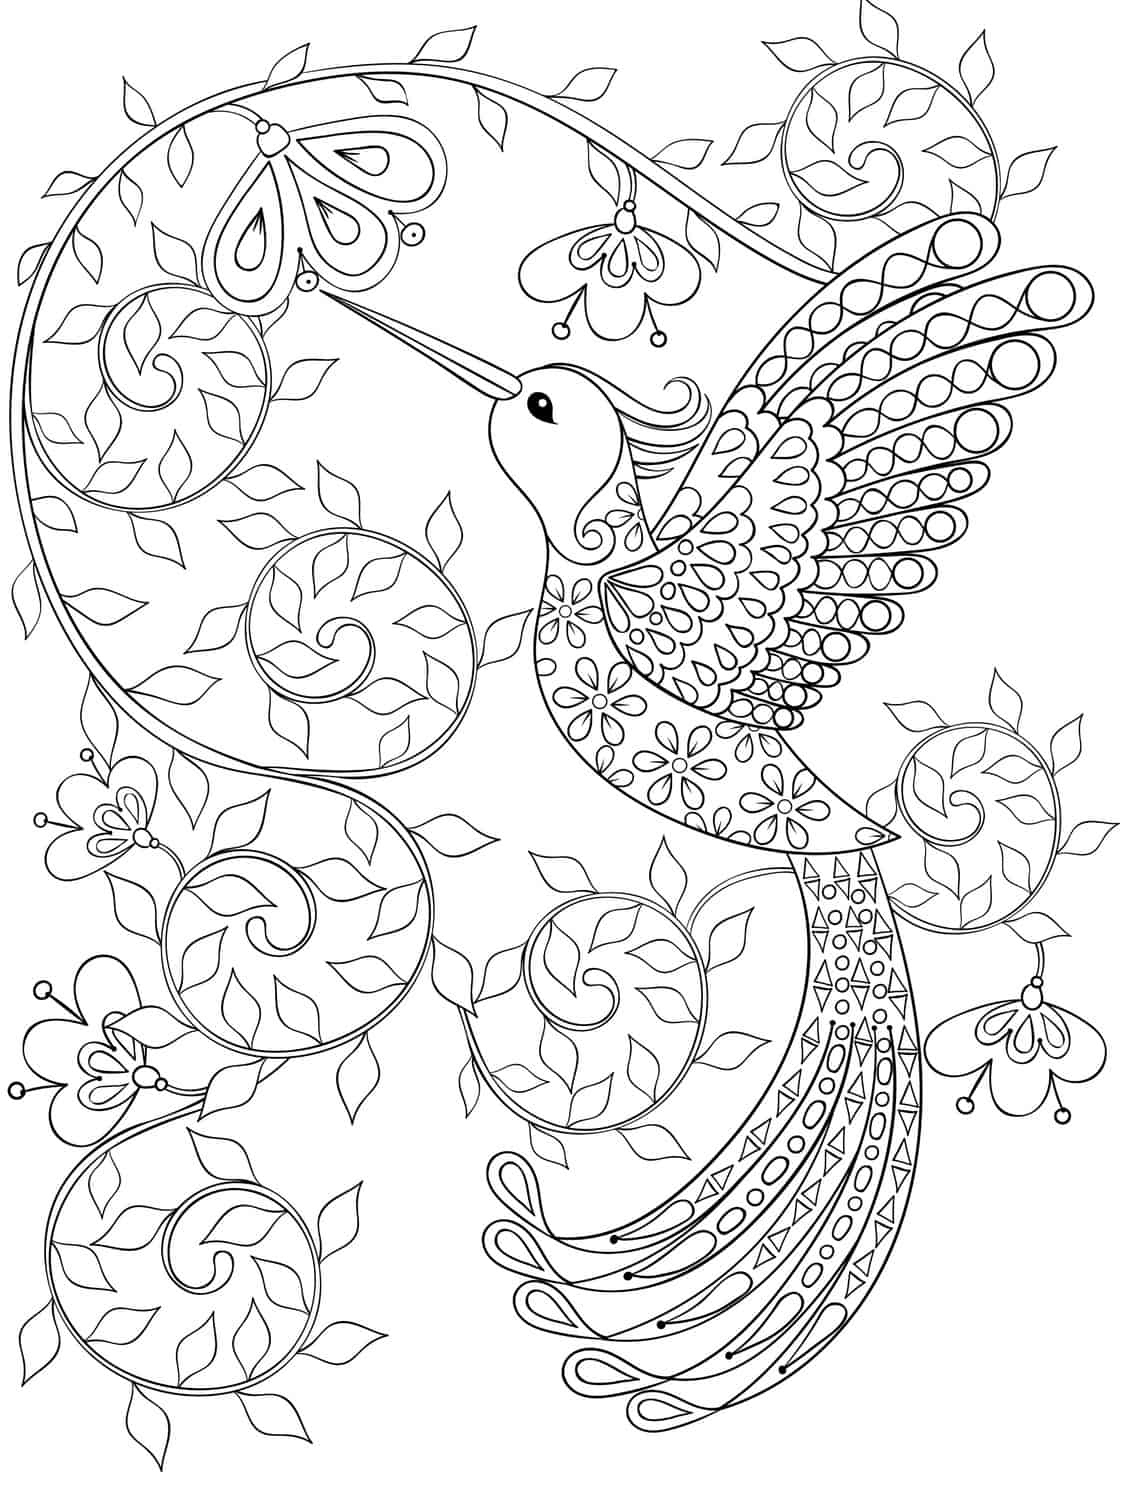 20 Gorgeous Free Printable Adult Coloring Pages Page 11 Free Printable Coloring Book Pages For Adults